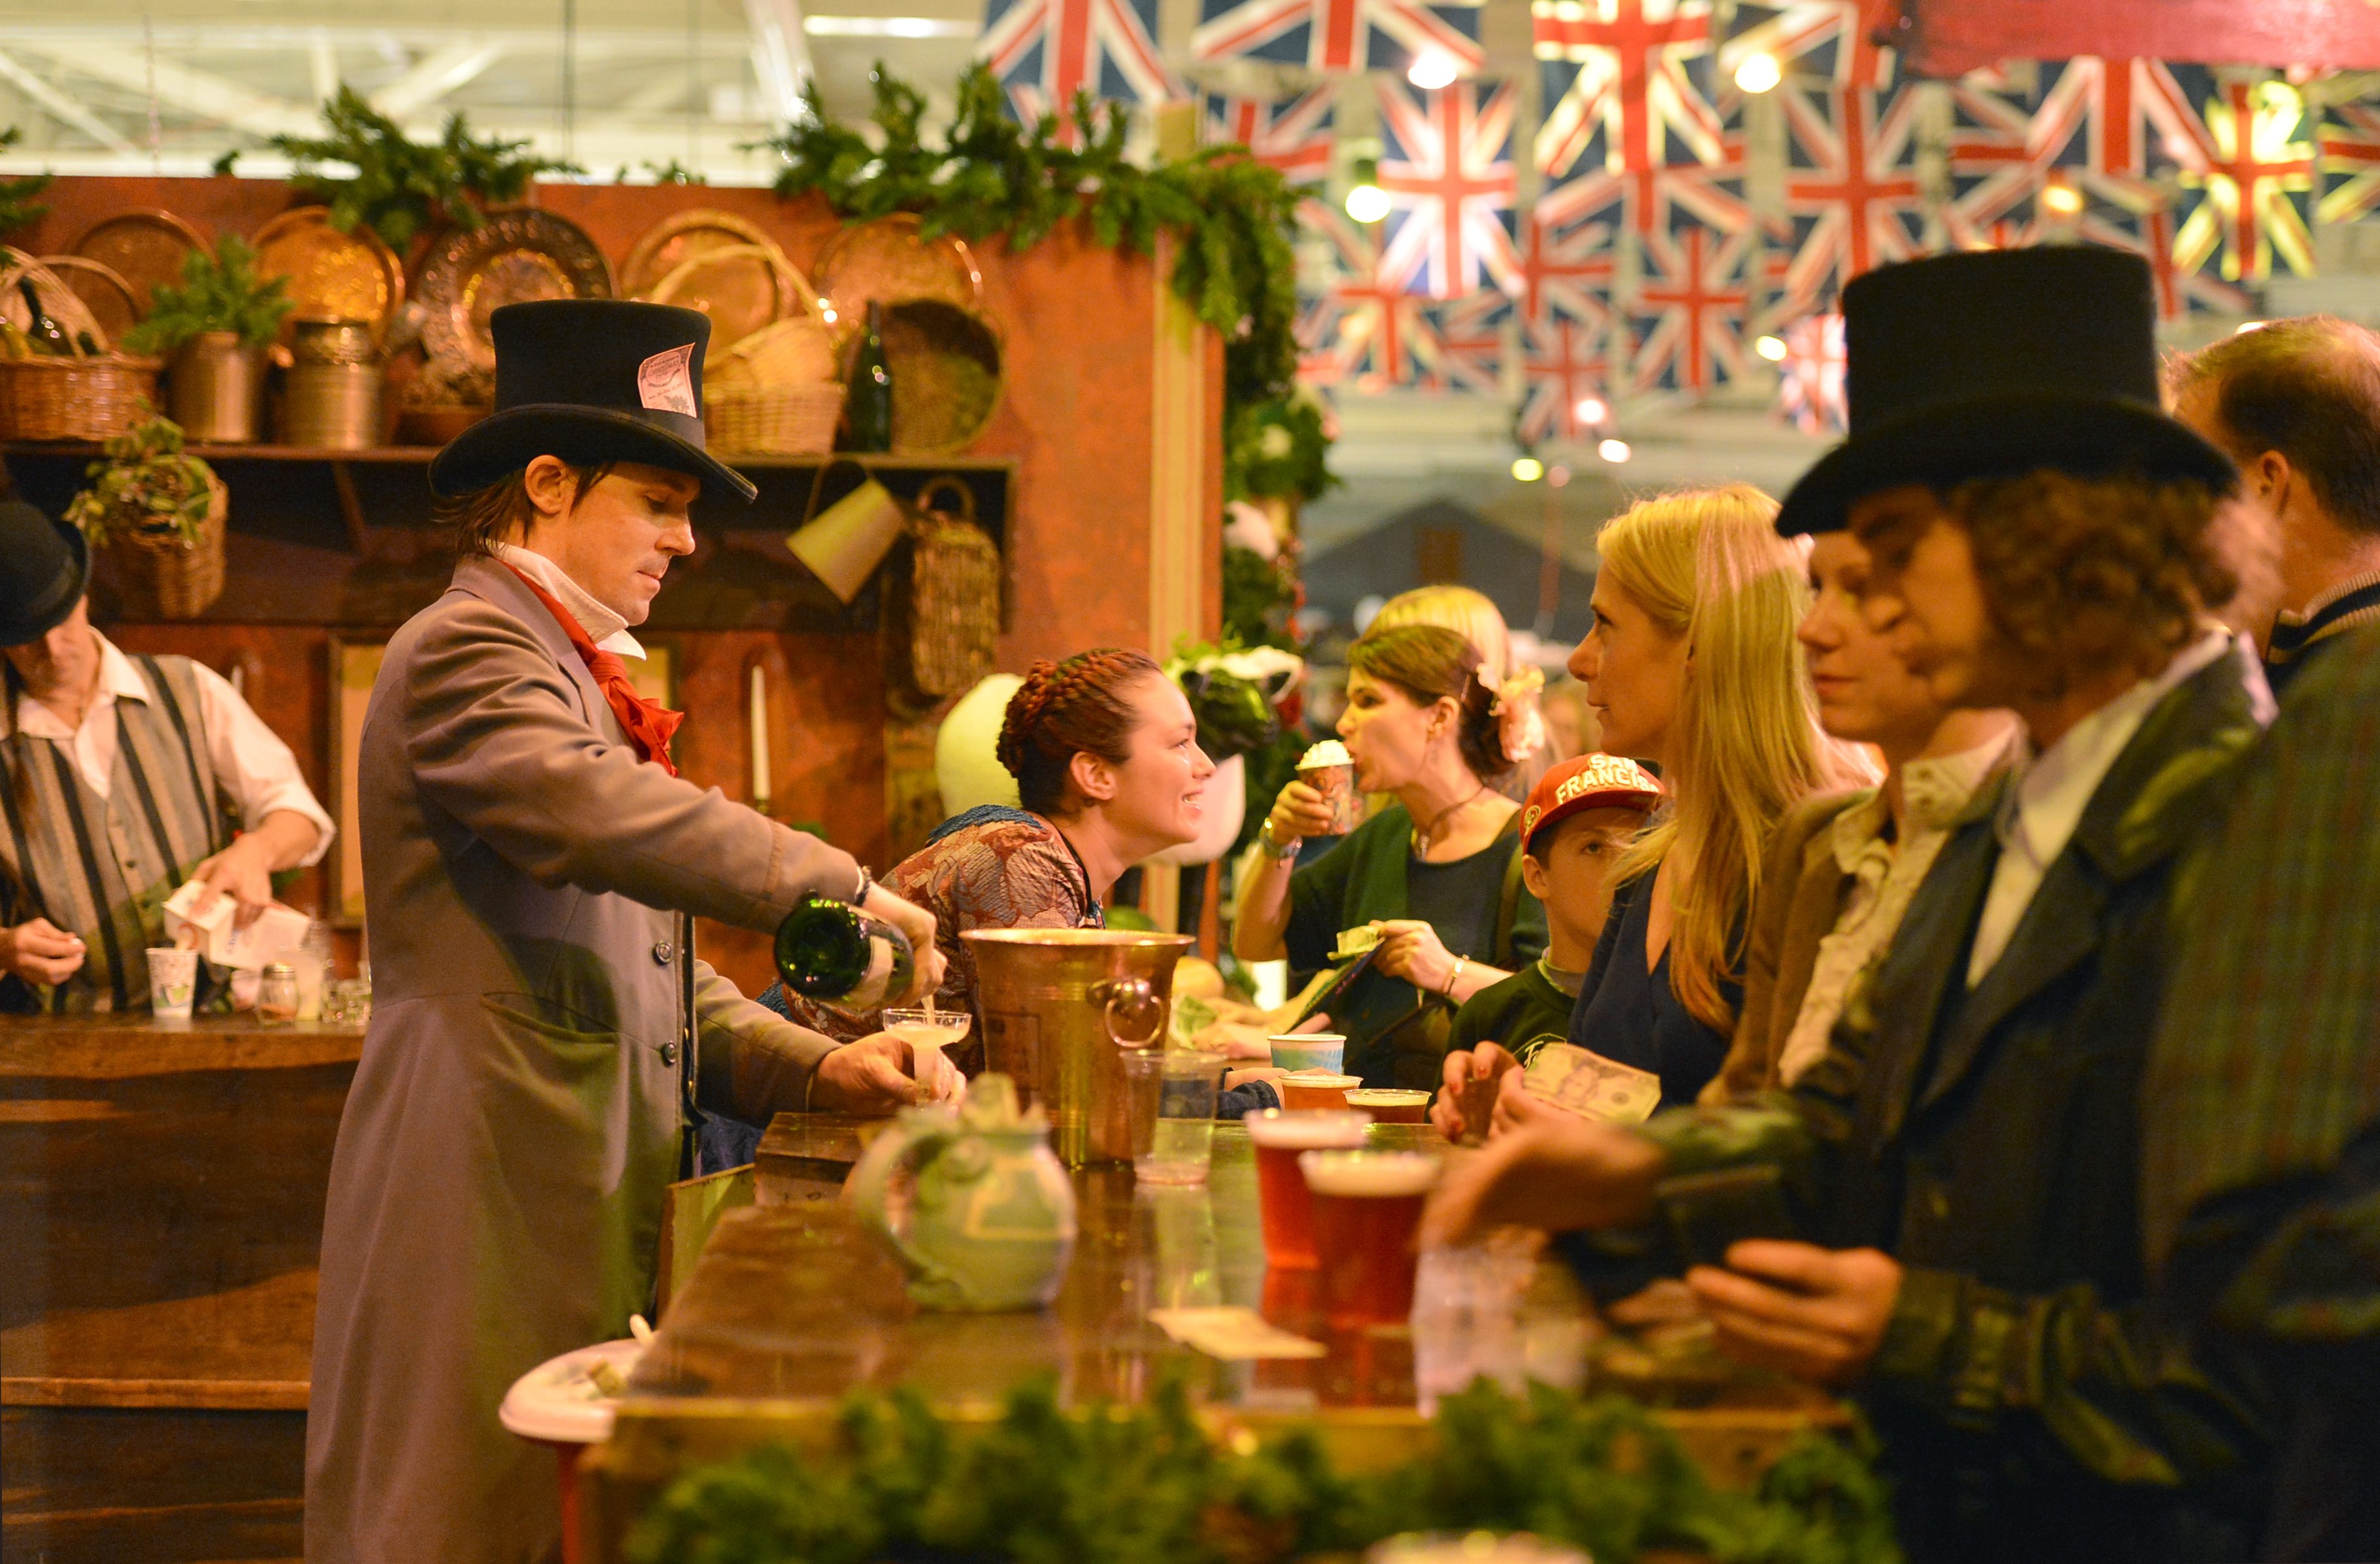 Dickens Fair: What to Know About the San Francisco Christmas